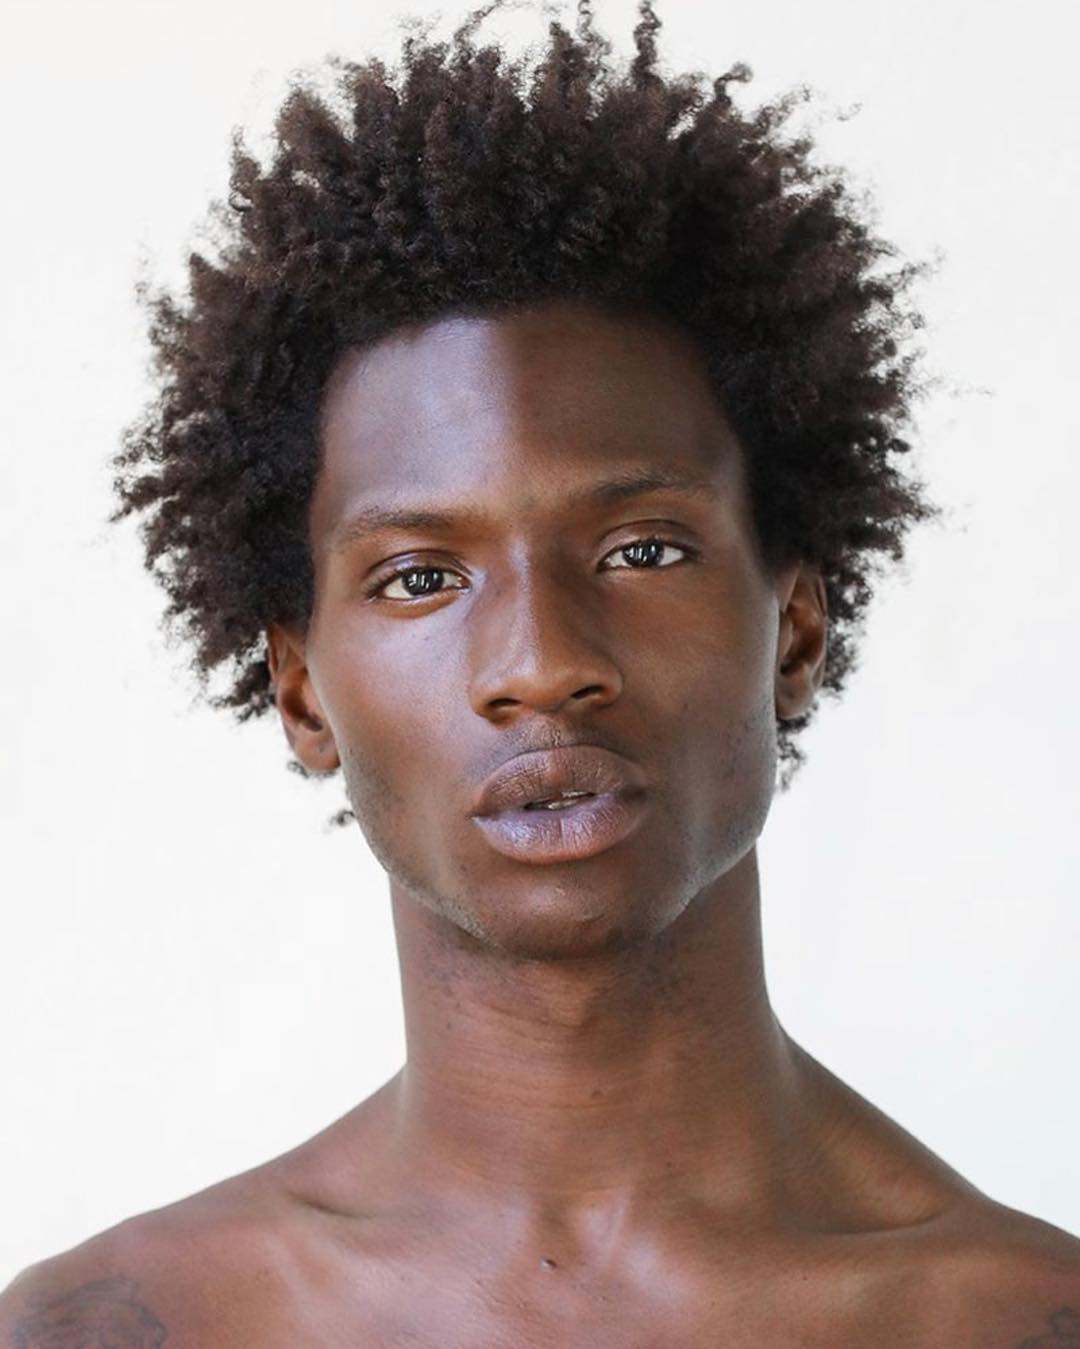 African male models